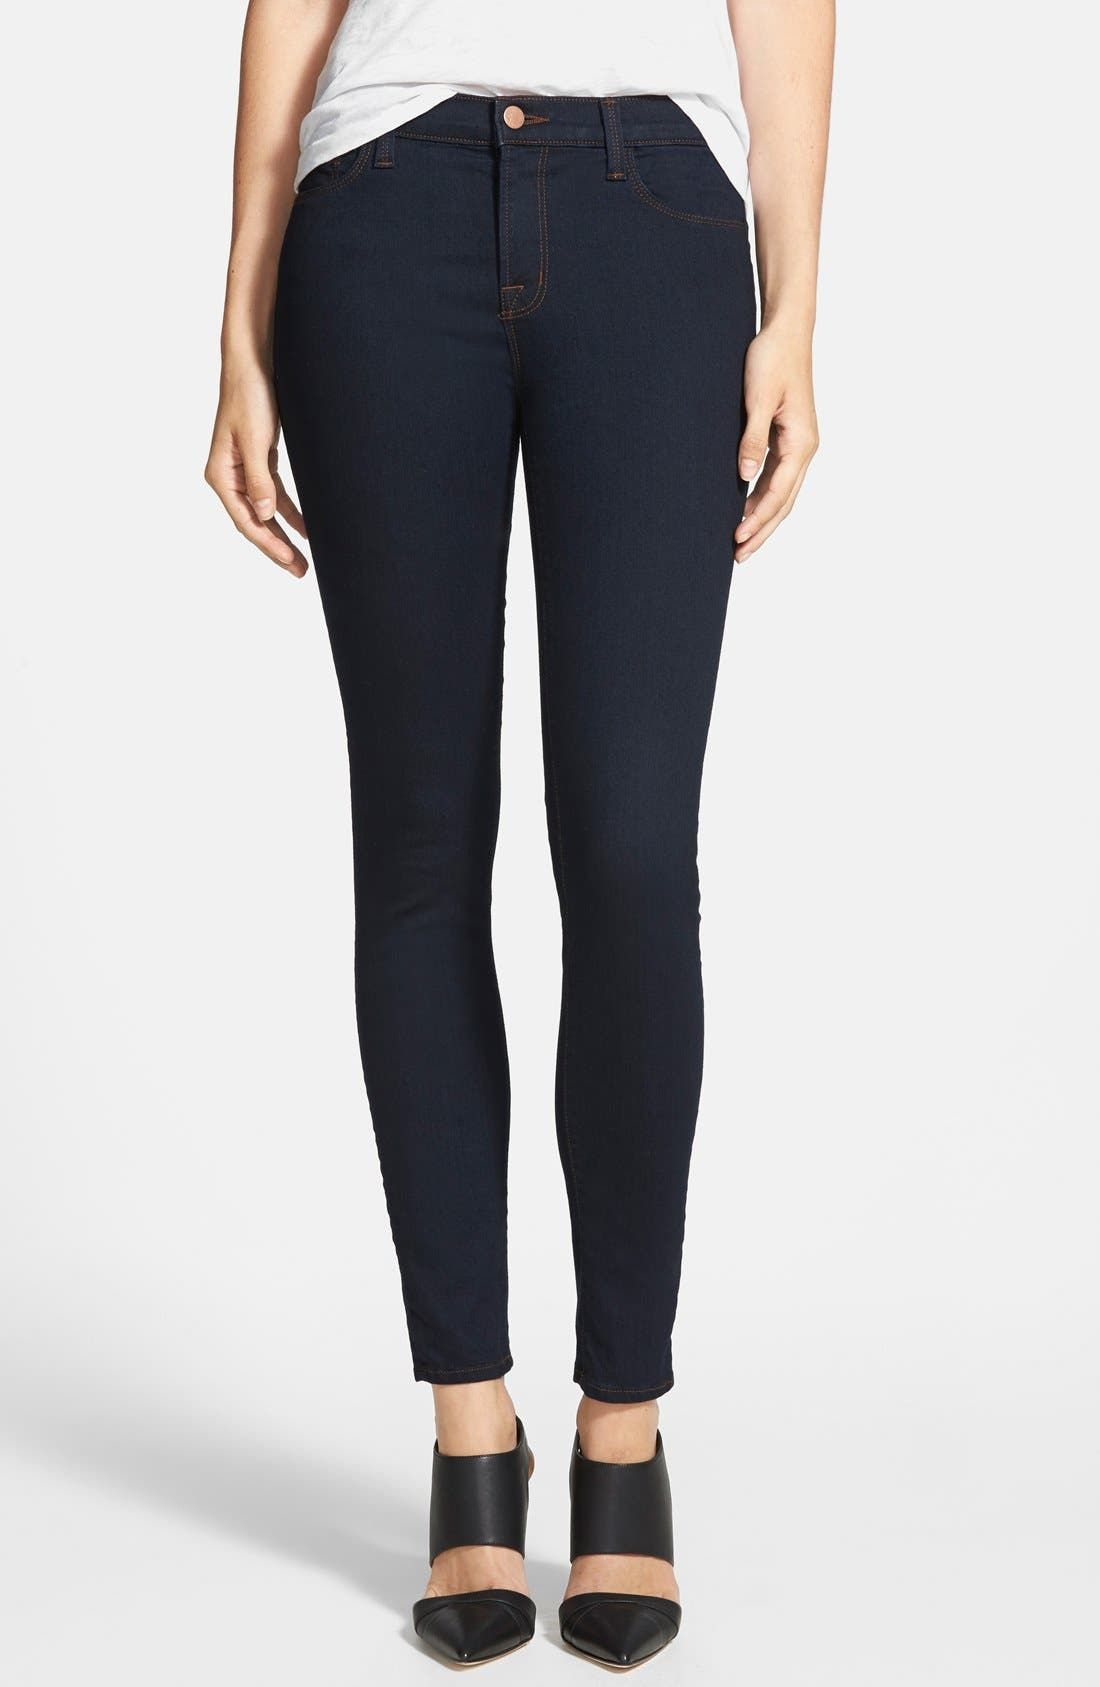 '811' Ankle Skinny Jeans,                             Main thumbnail 1, color,                             460